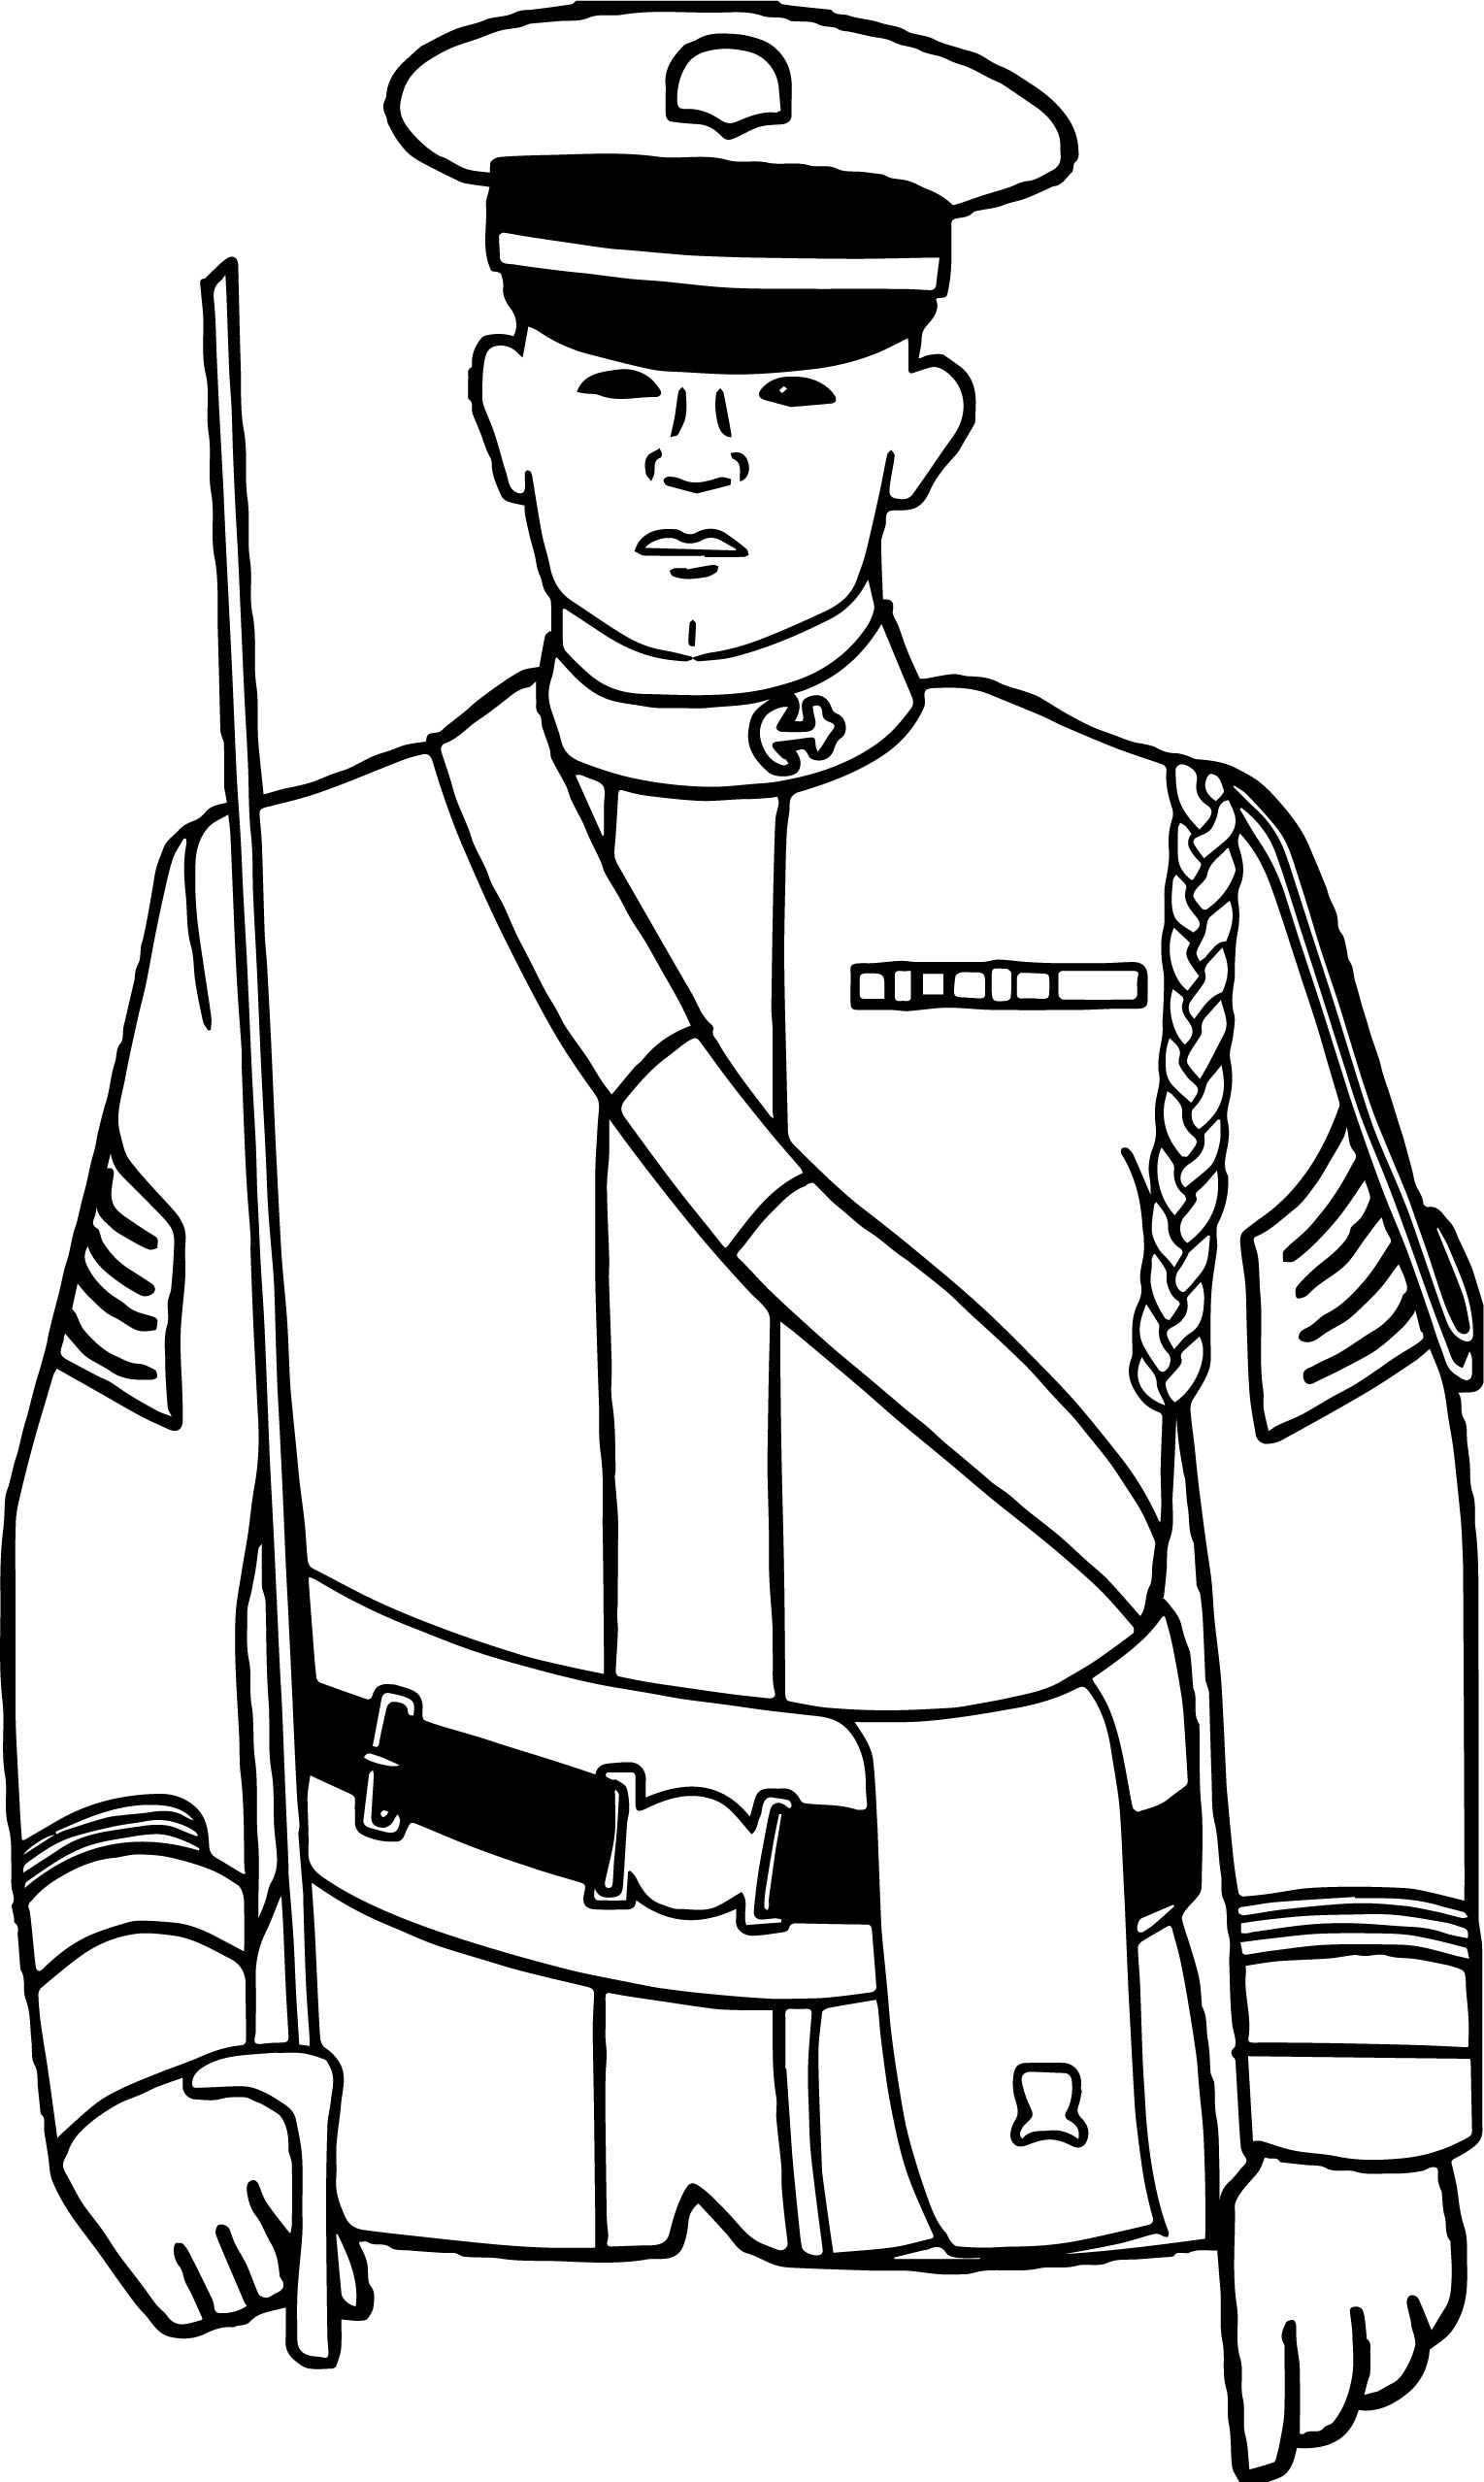 printable army coloring pages printable army coloring pages coloring pages printable army